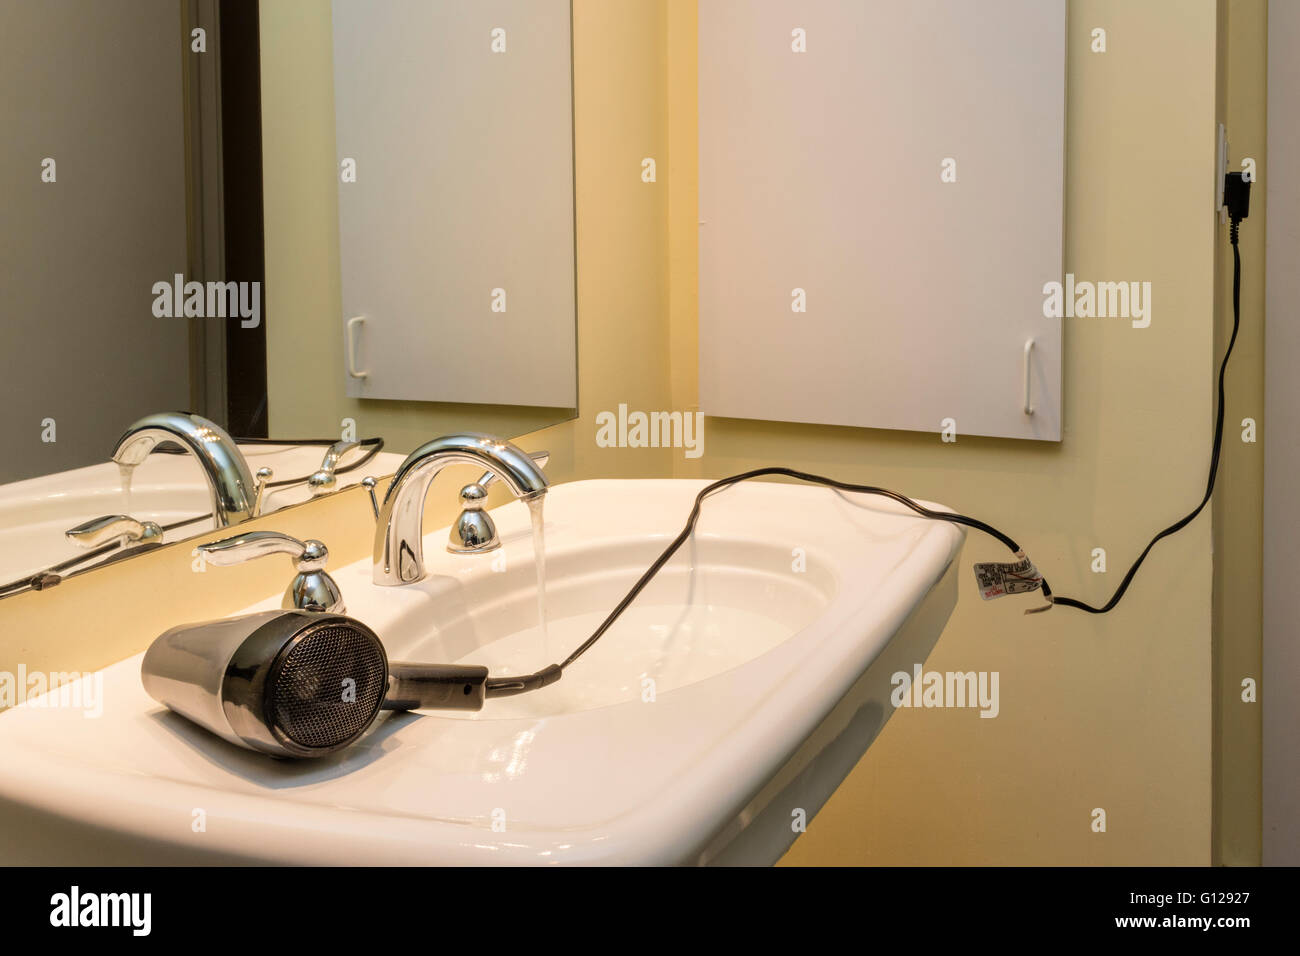 Hair dryer with electric cord stretching across sink, posing shock or electrocution risk. Suitable for OT safety - Stock Image